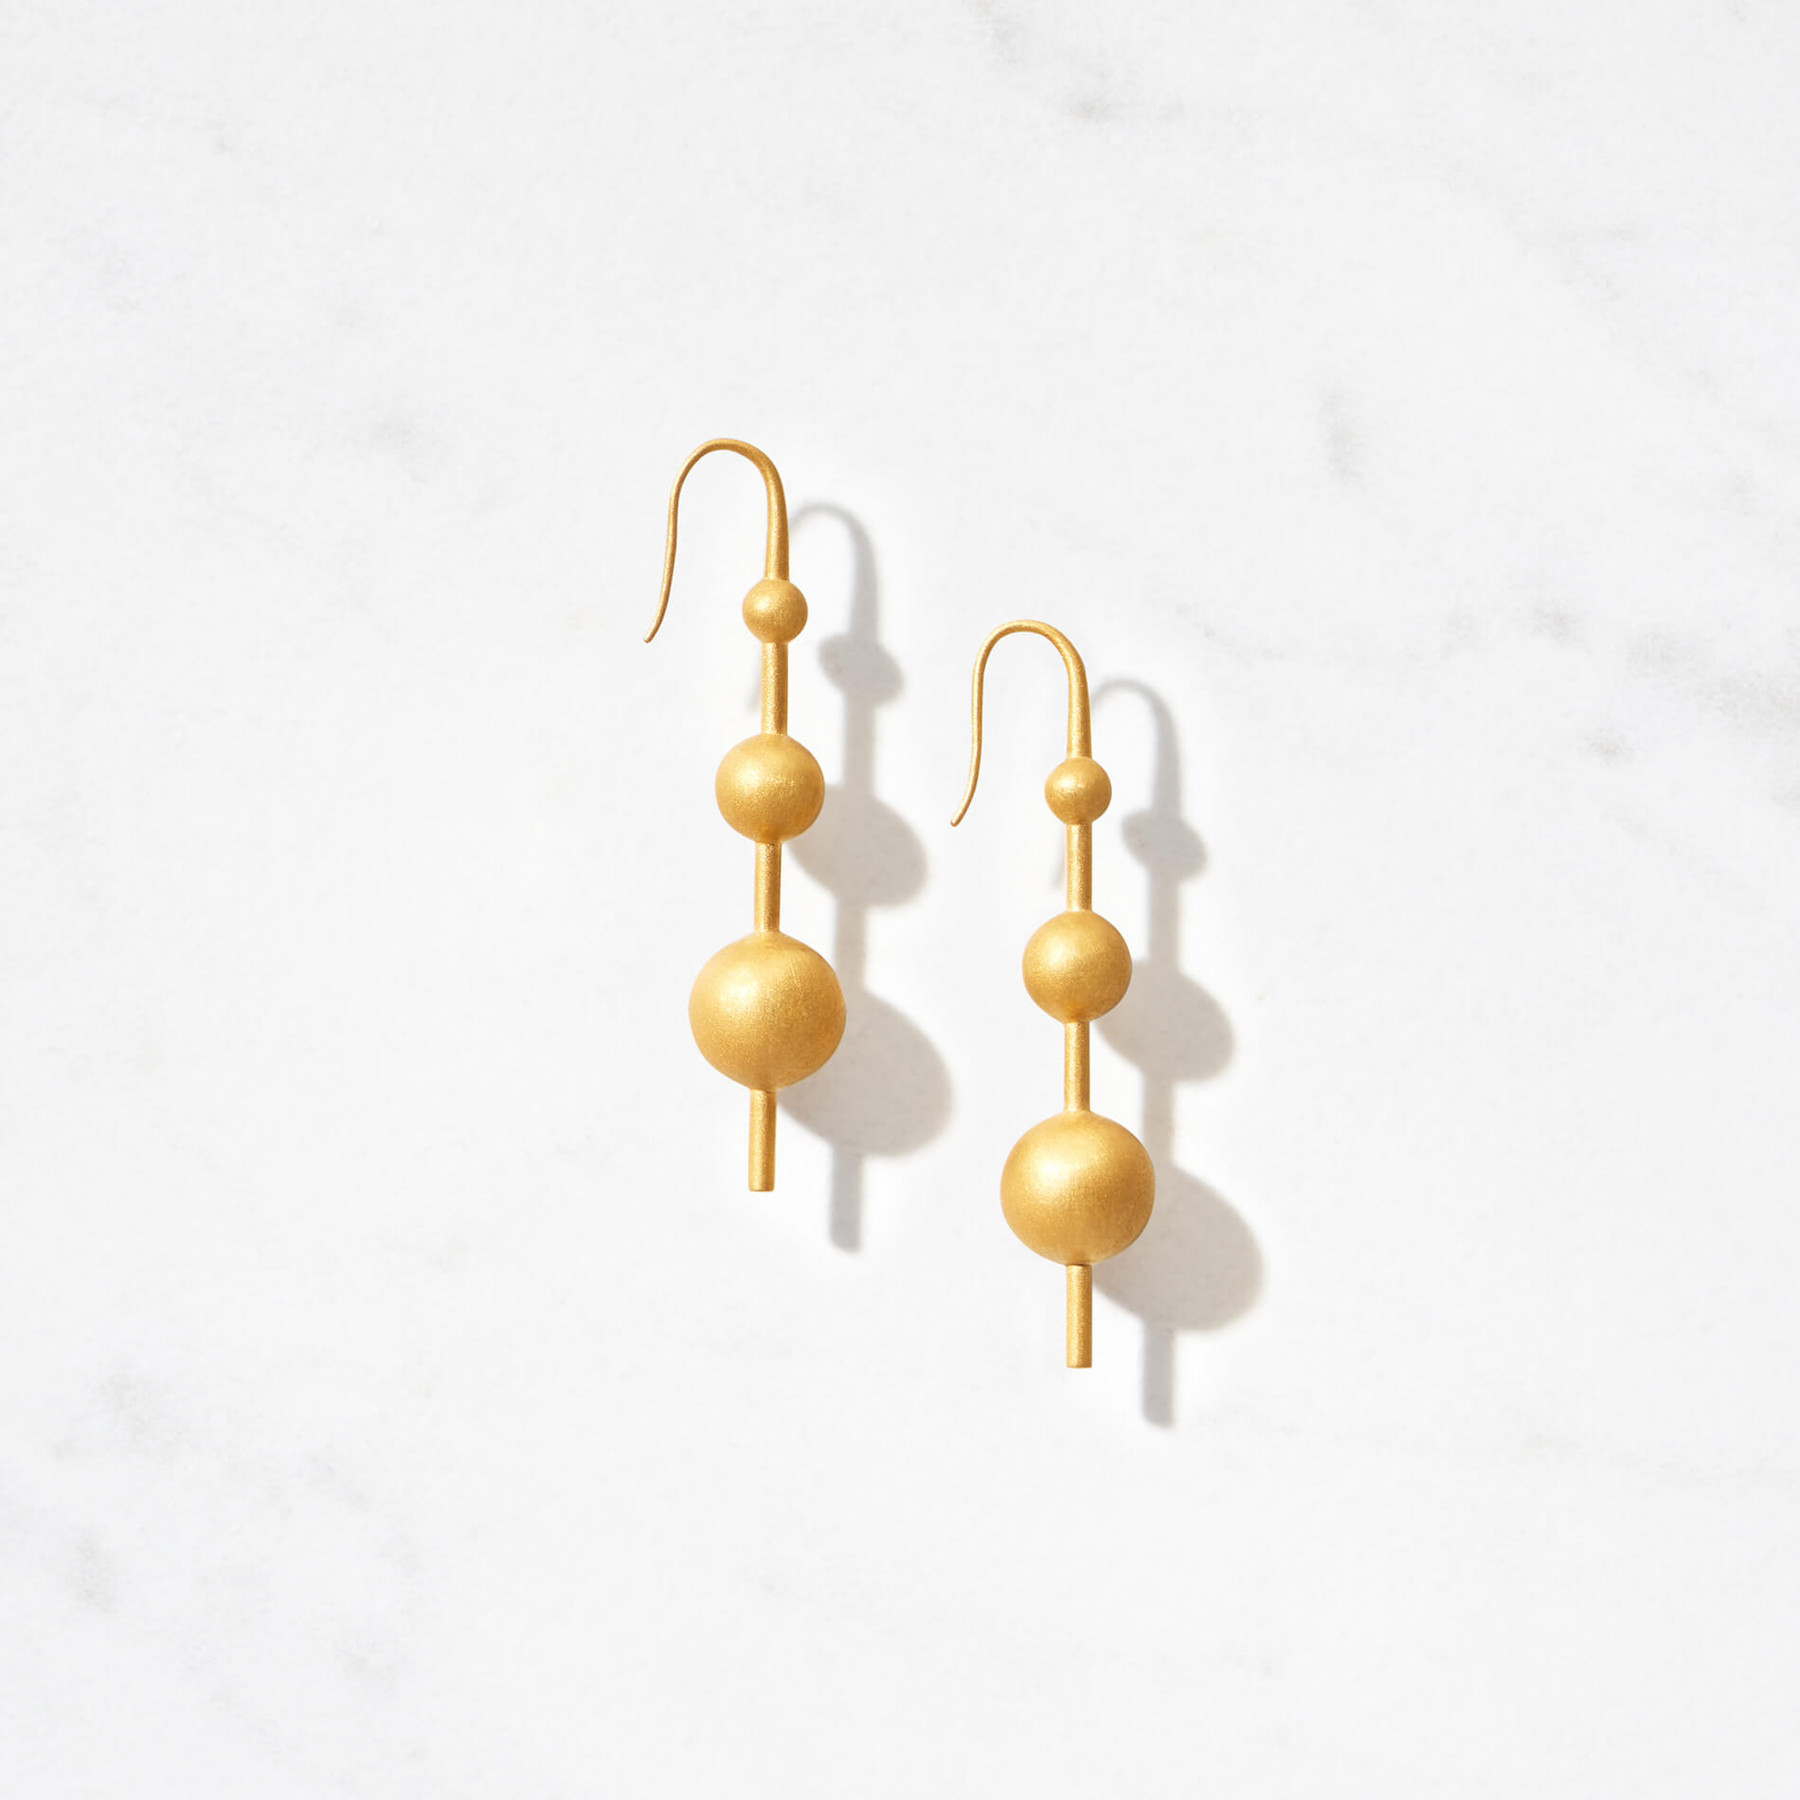 Our Luna Aurelia Earrings boast three golden moons floating on a vertical axis. Handcrafted from 22 karat matte gold with a gold weight of approximately 14 grams.